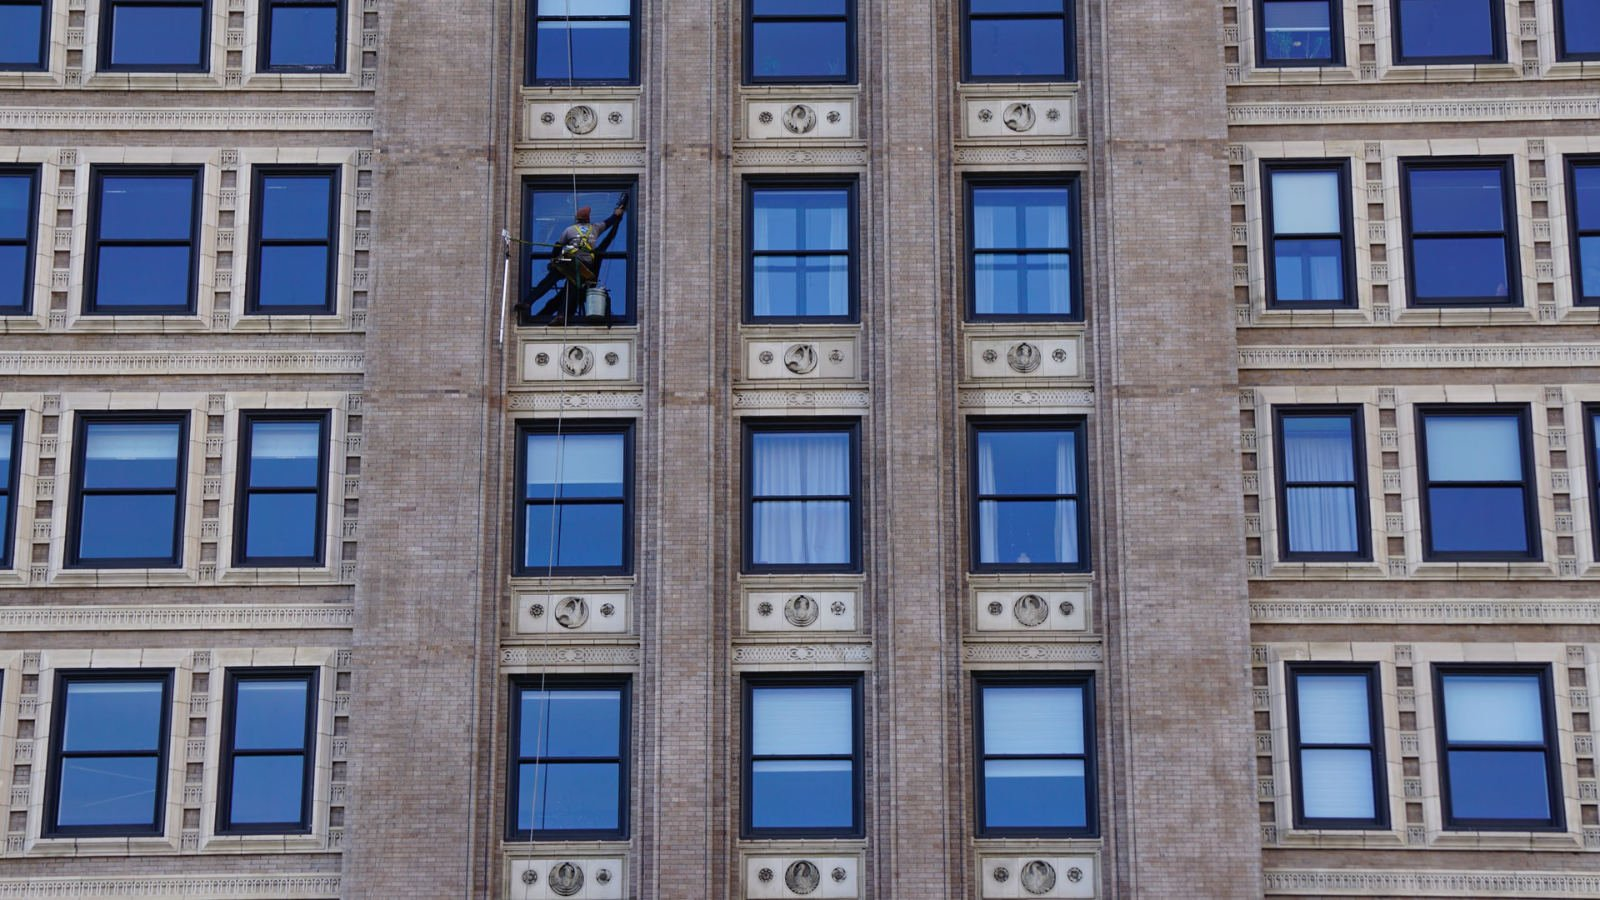 A window cleaner doing work that looks unreachable